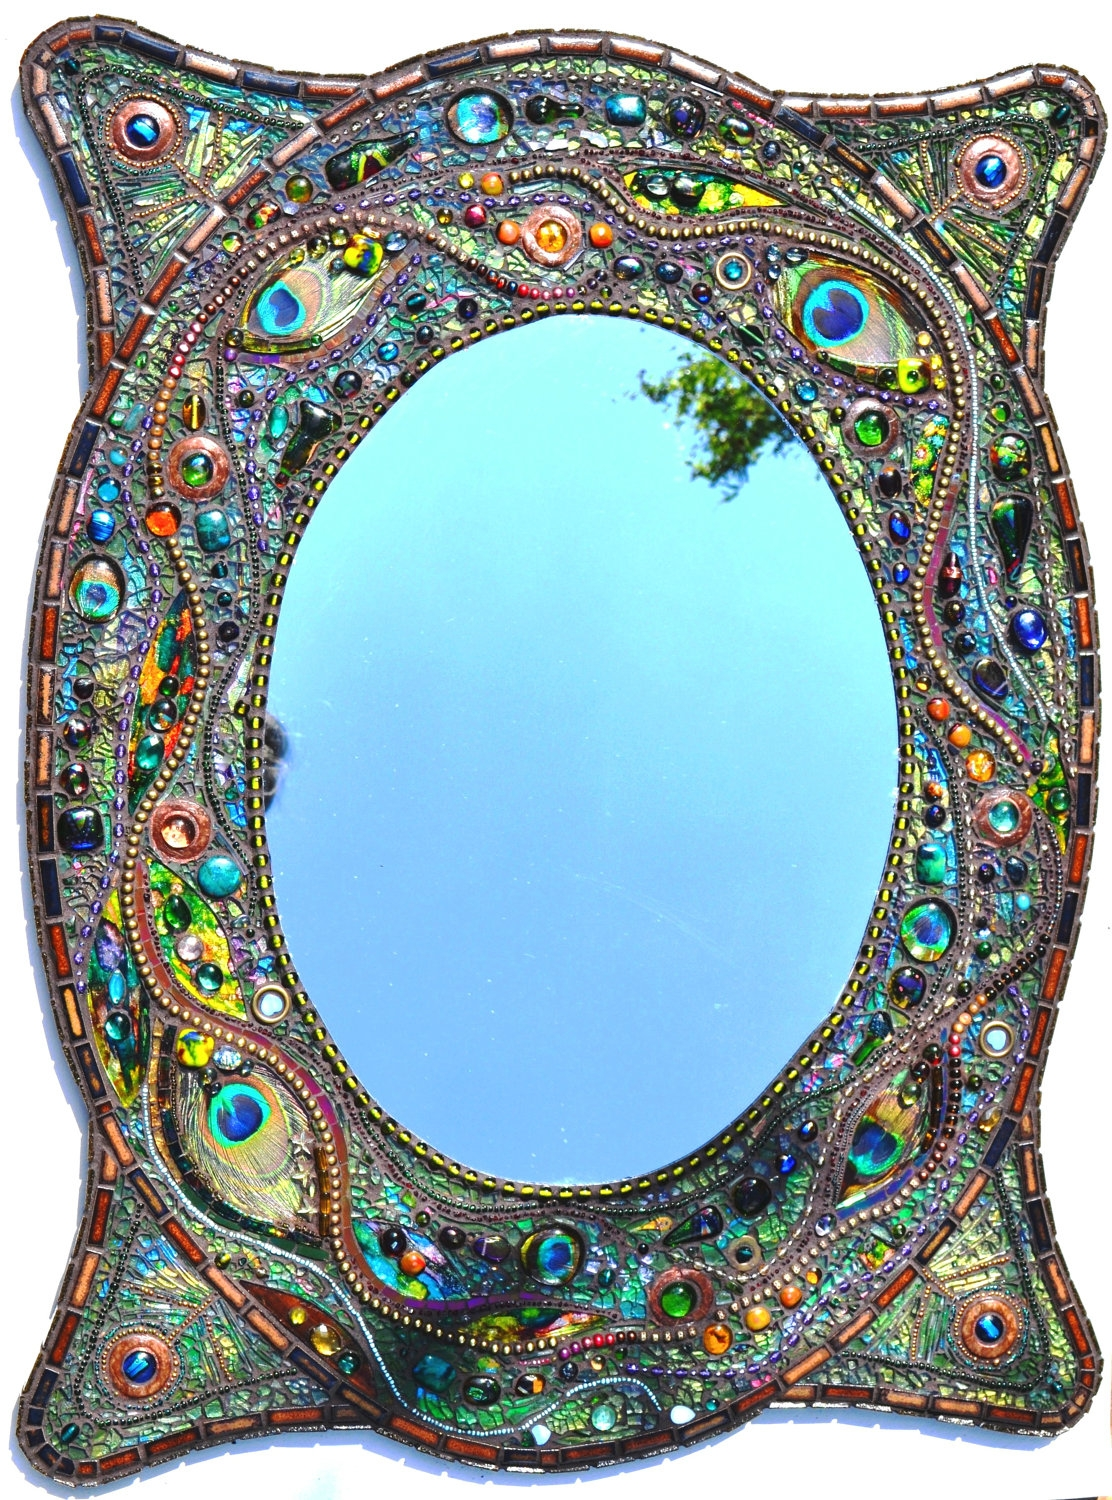 Sold Mosaic Peacock Mirror Mosaic Art Real Peacock Feather Within Large Mosaic Mirrors (Image 14 of 15)